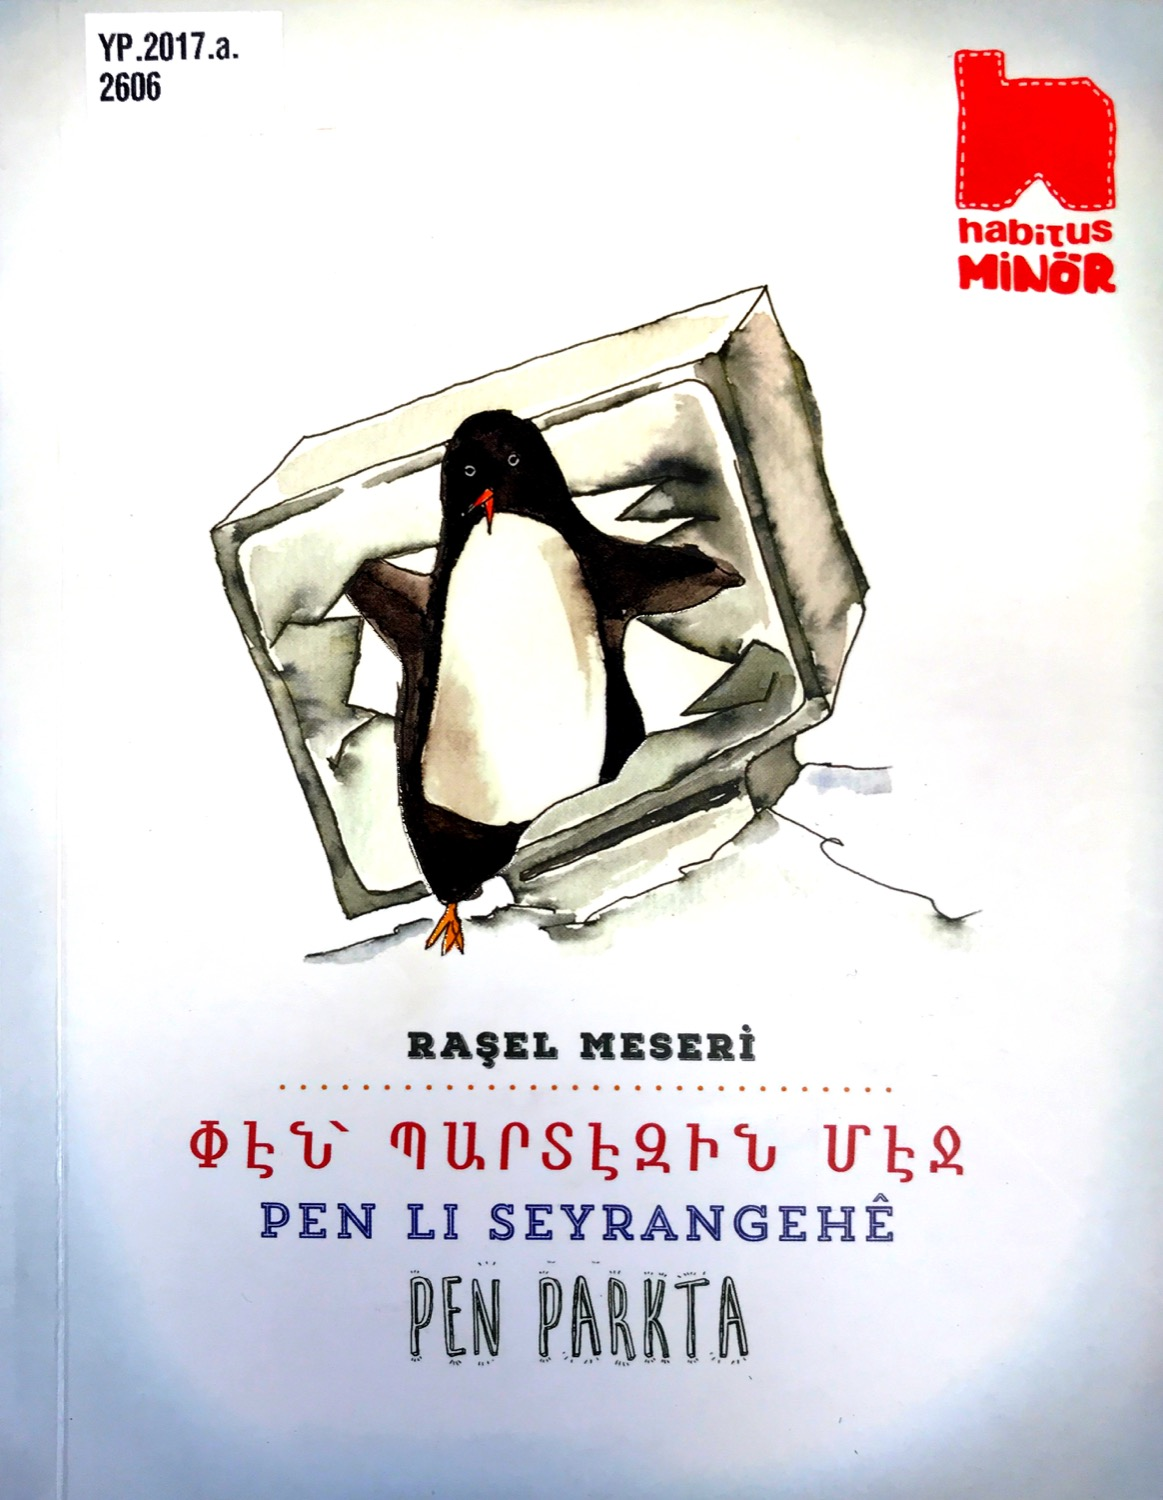 The Other March of the Penguins: A Flightless Mascot for Dissent in